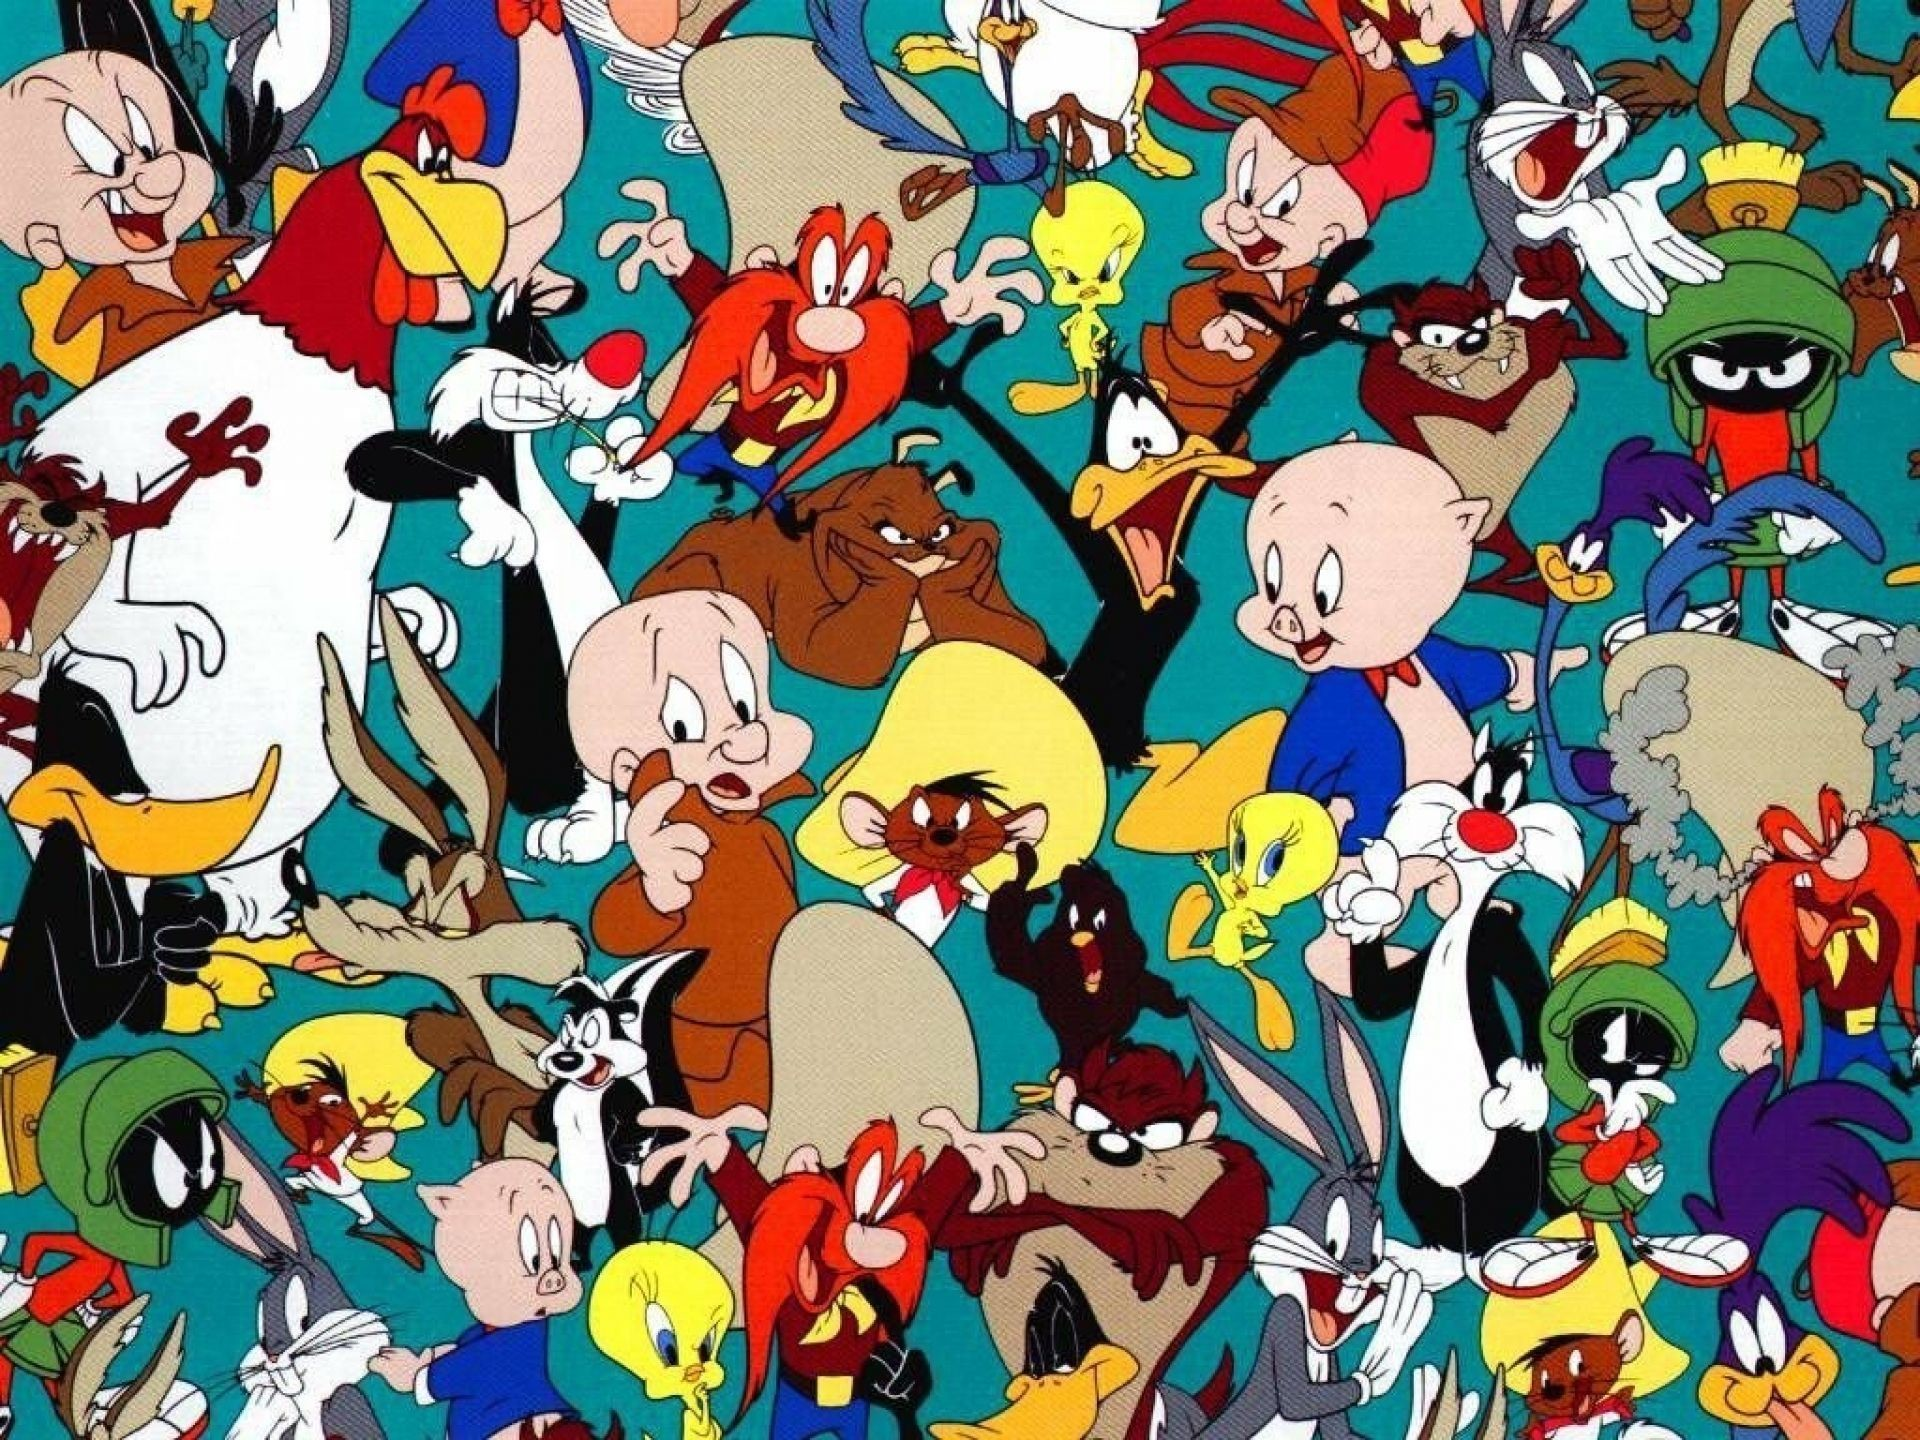 Res: 1920x1440, 4k Ultra Bugs Bunny HD Wallpapers for PC & Mac, Laptop, Tablet, Mobile Phone